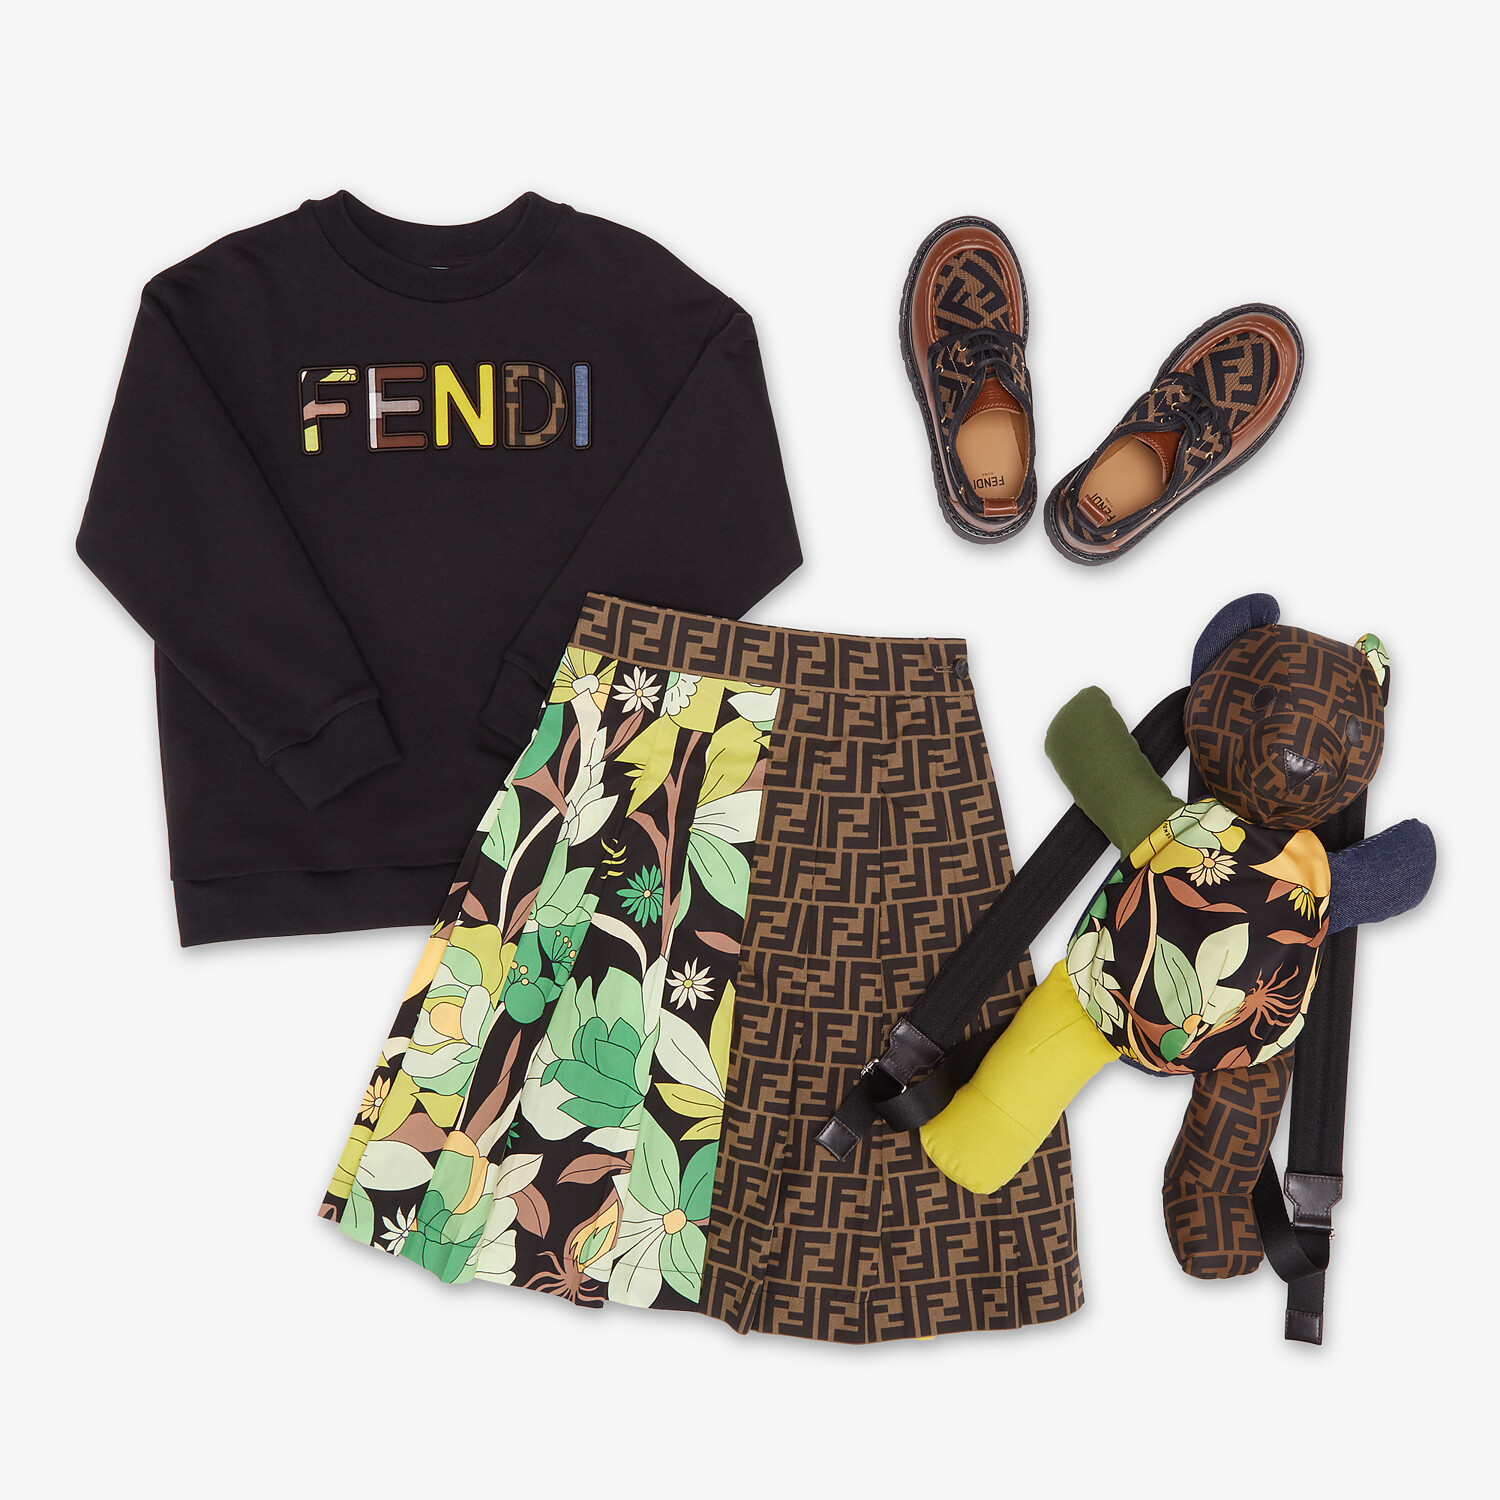 FENDI TEDDY BEAR BACKPACK - Teddy bear backpack in multicolor patchwork fabric with FF logo - view 4 detail